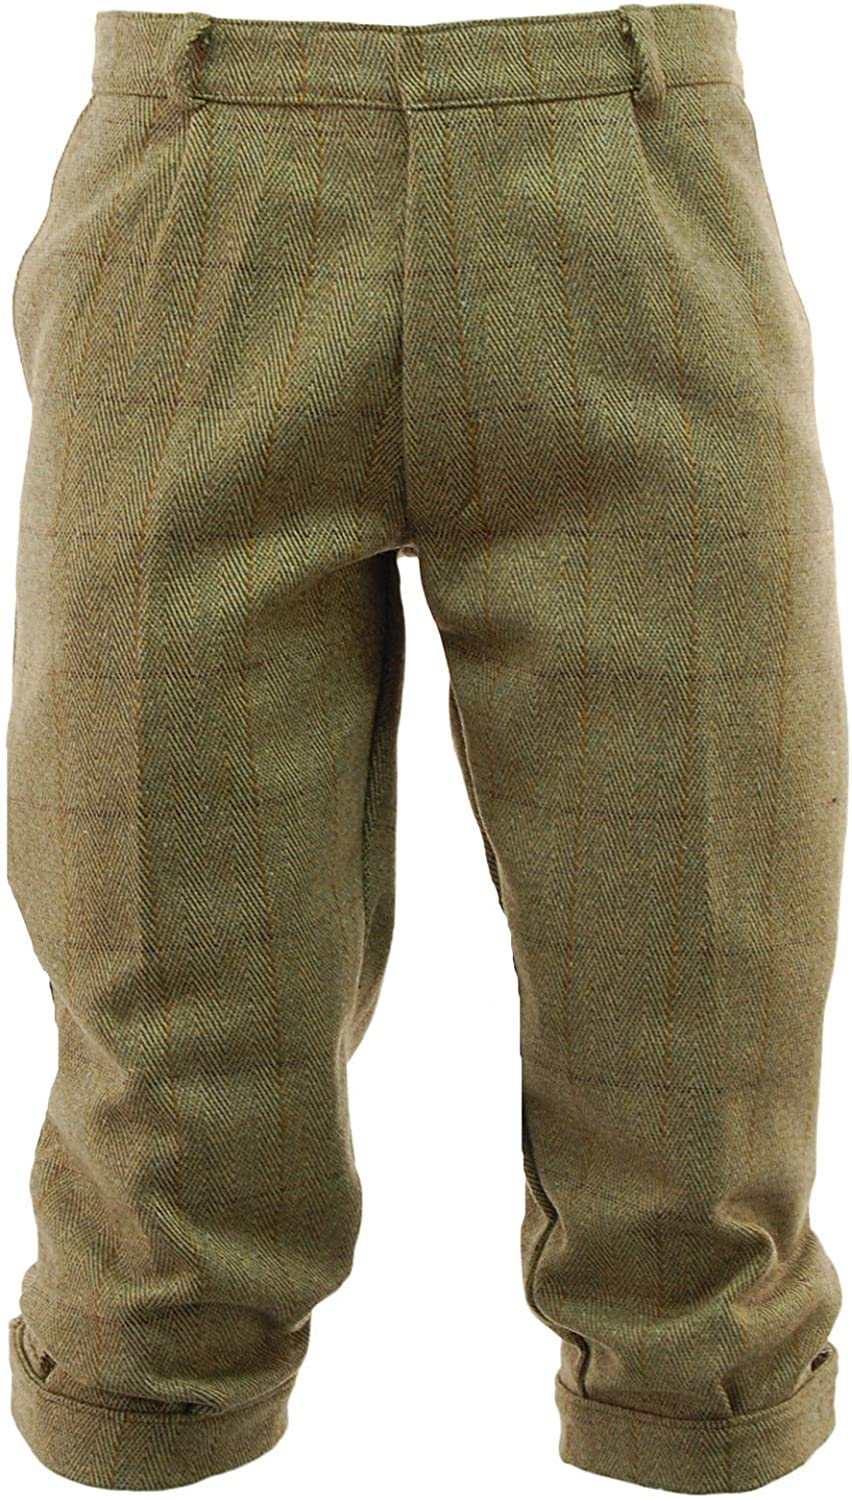 1920s Men's Clothing Game Technical Apparel Mens Light Derby Tweed Breeches Breeks Trousers £44.95 AT vintagedancer.com